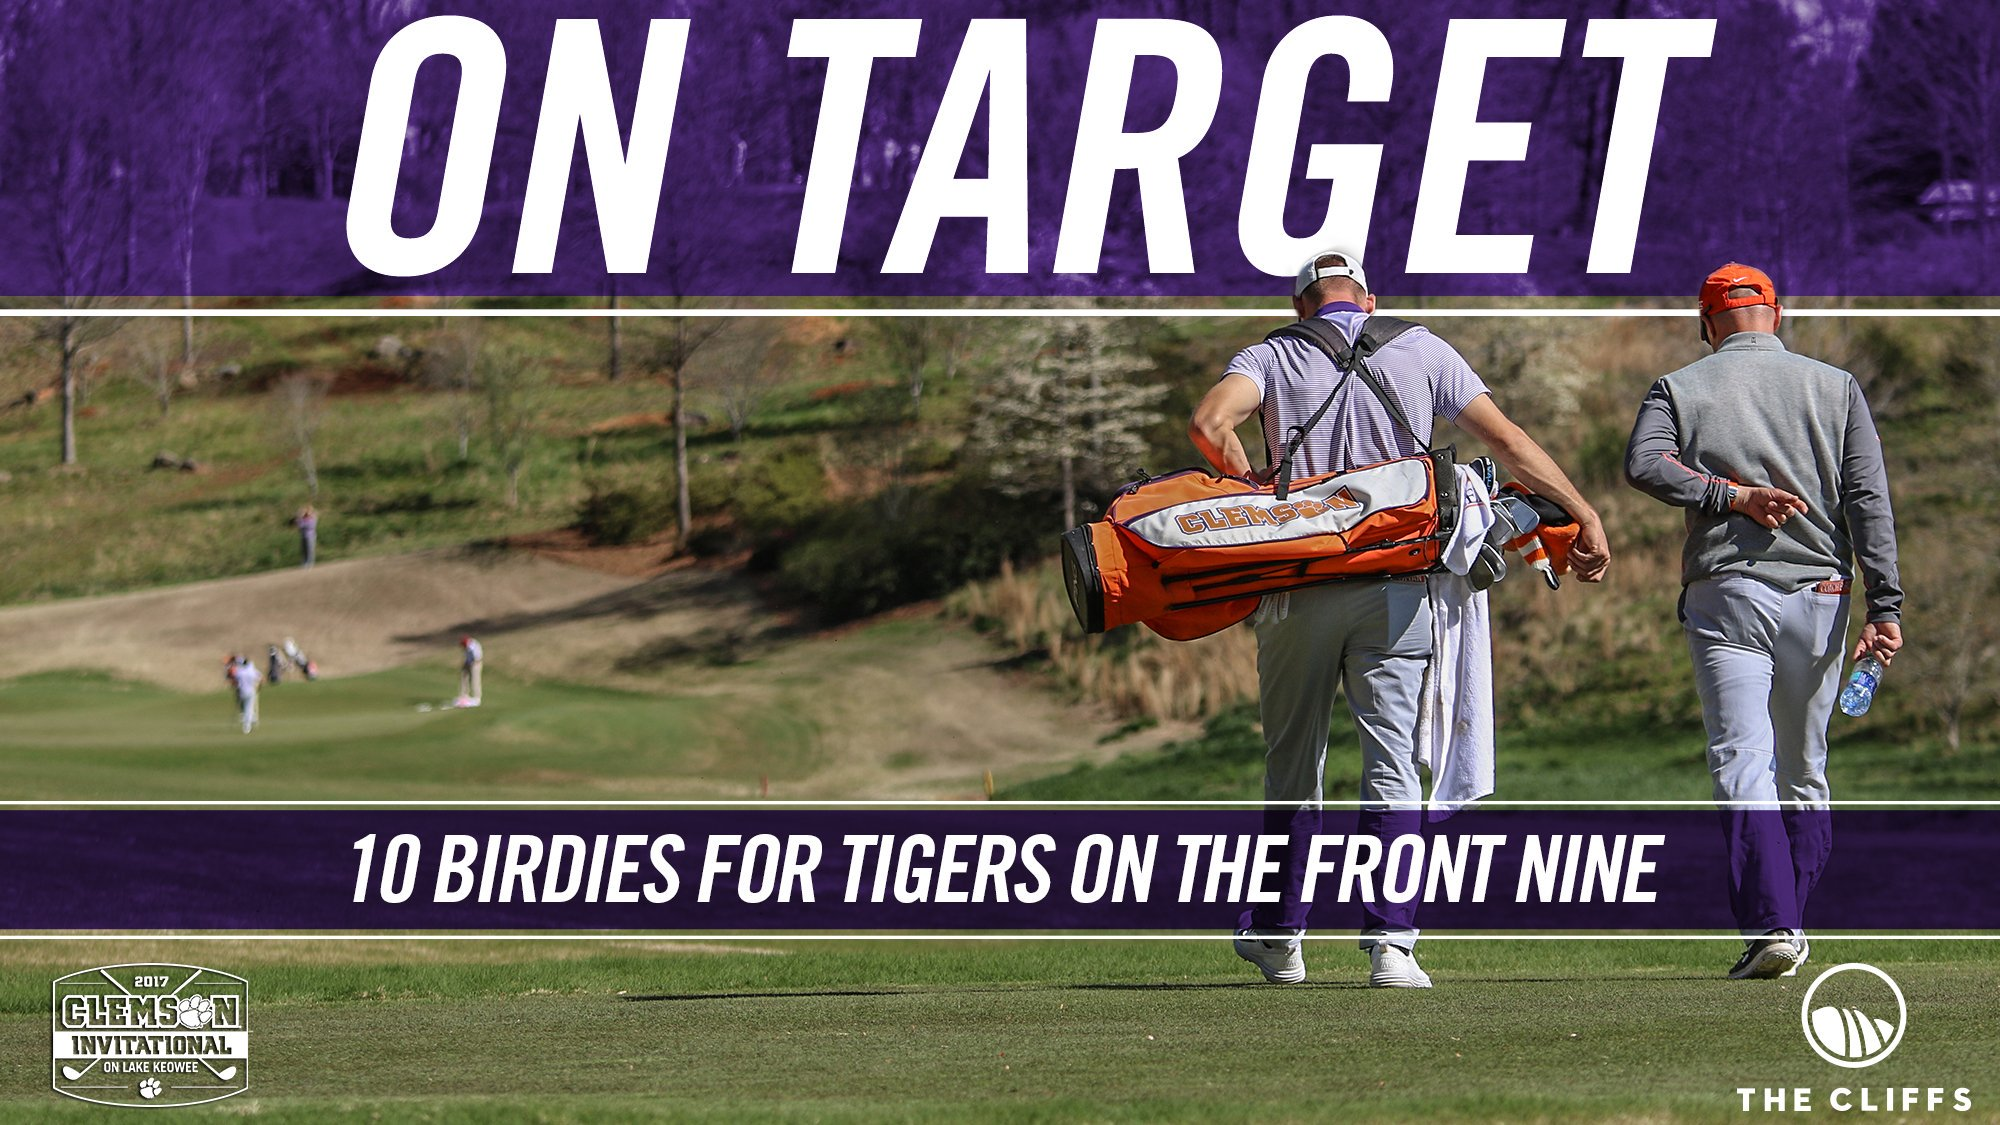 Tigers on 🎯 for a great #ClemsonInvitational Day 2 - Birdies: Carson Young (3), Doc Redman (3), Bryson Nimmer (3), Austin Langdale (1) https://t.co/IetPLCUiVP